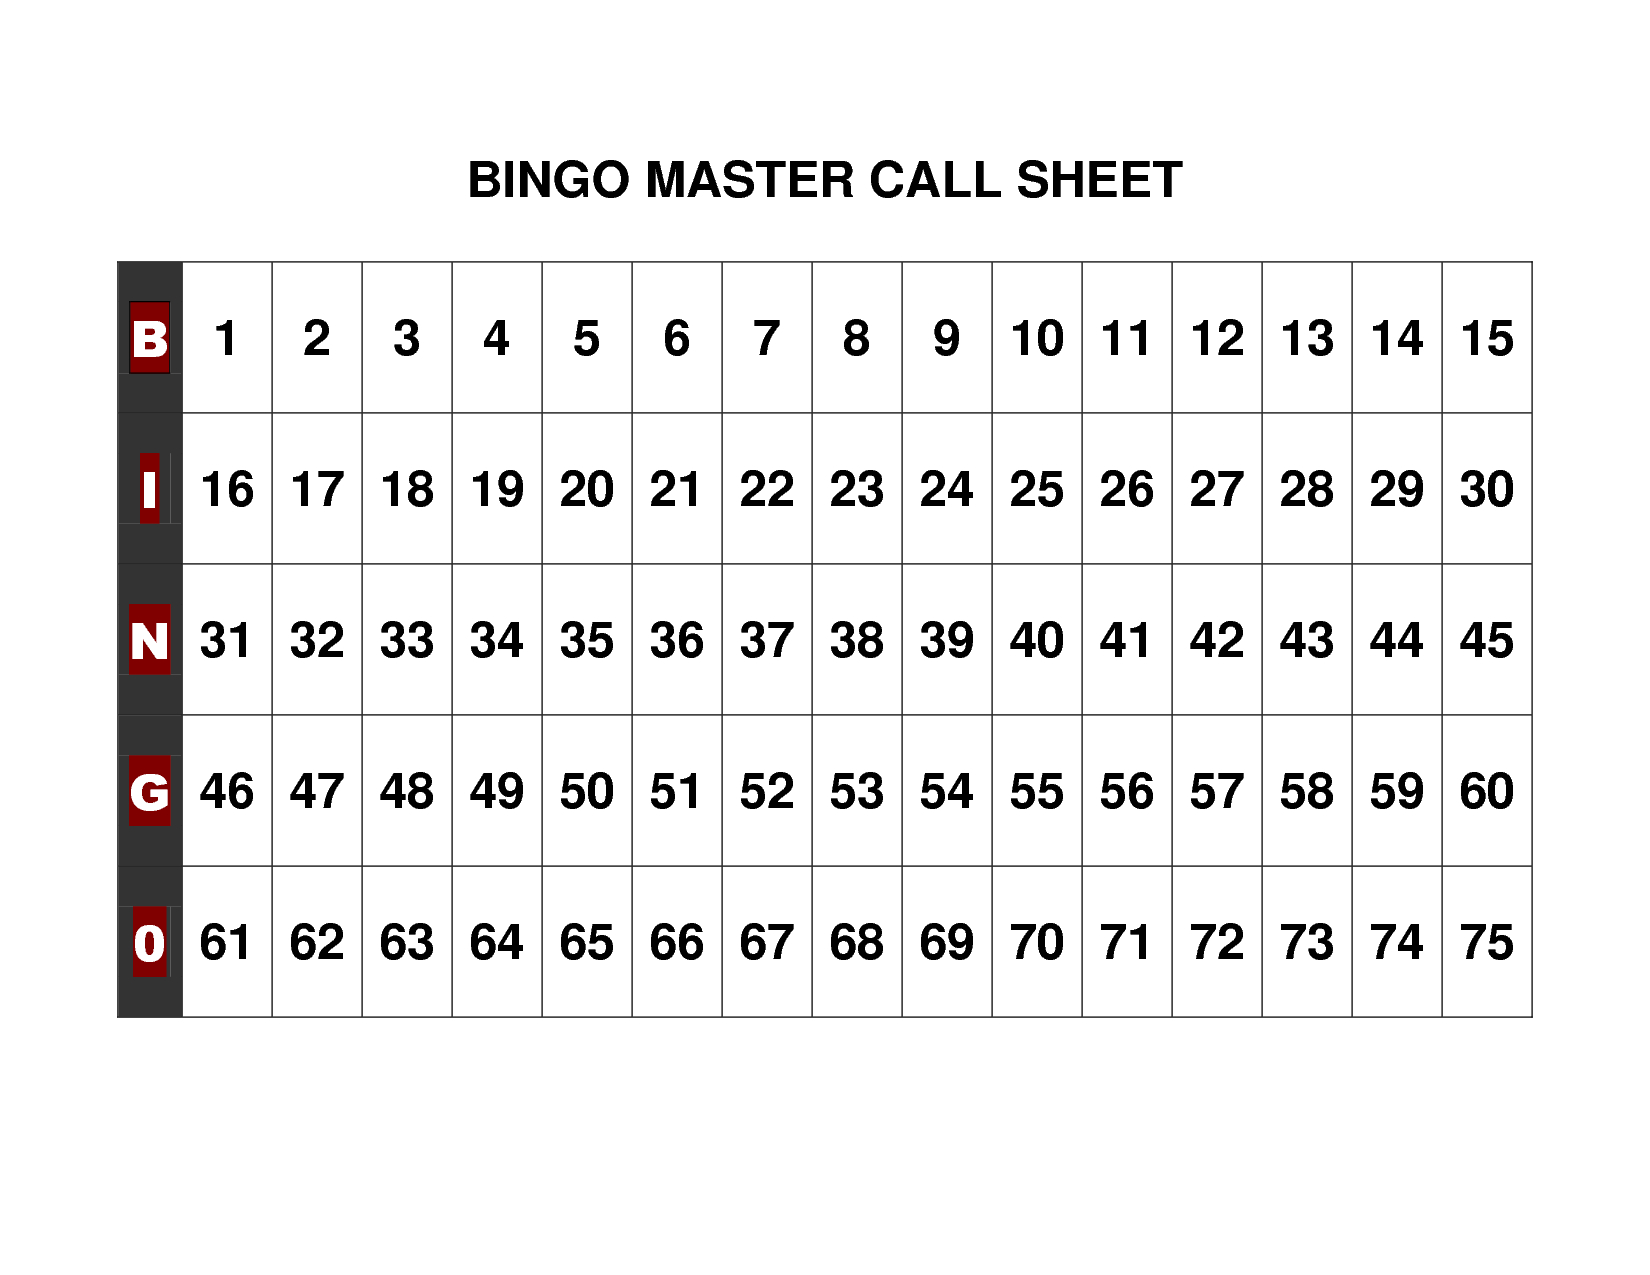 Free+Printable+Bingo+Call+Sheet | Bingo | Pinterest | Bingo, Bingo - Free Printable Bingo Cards 1 100